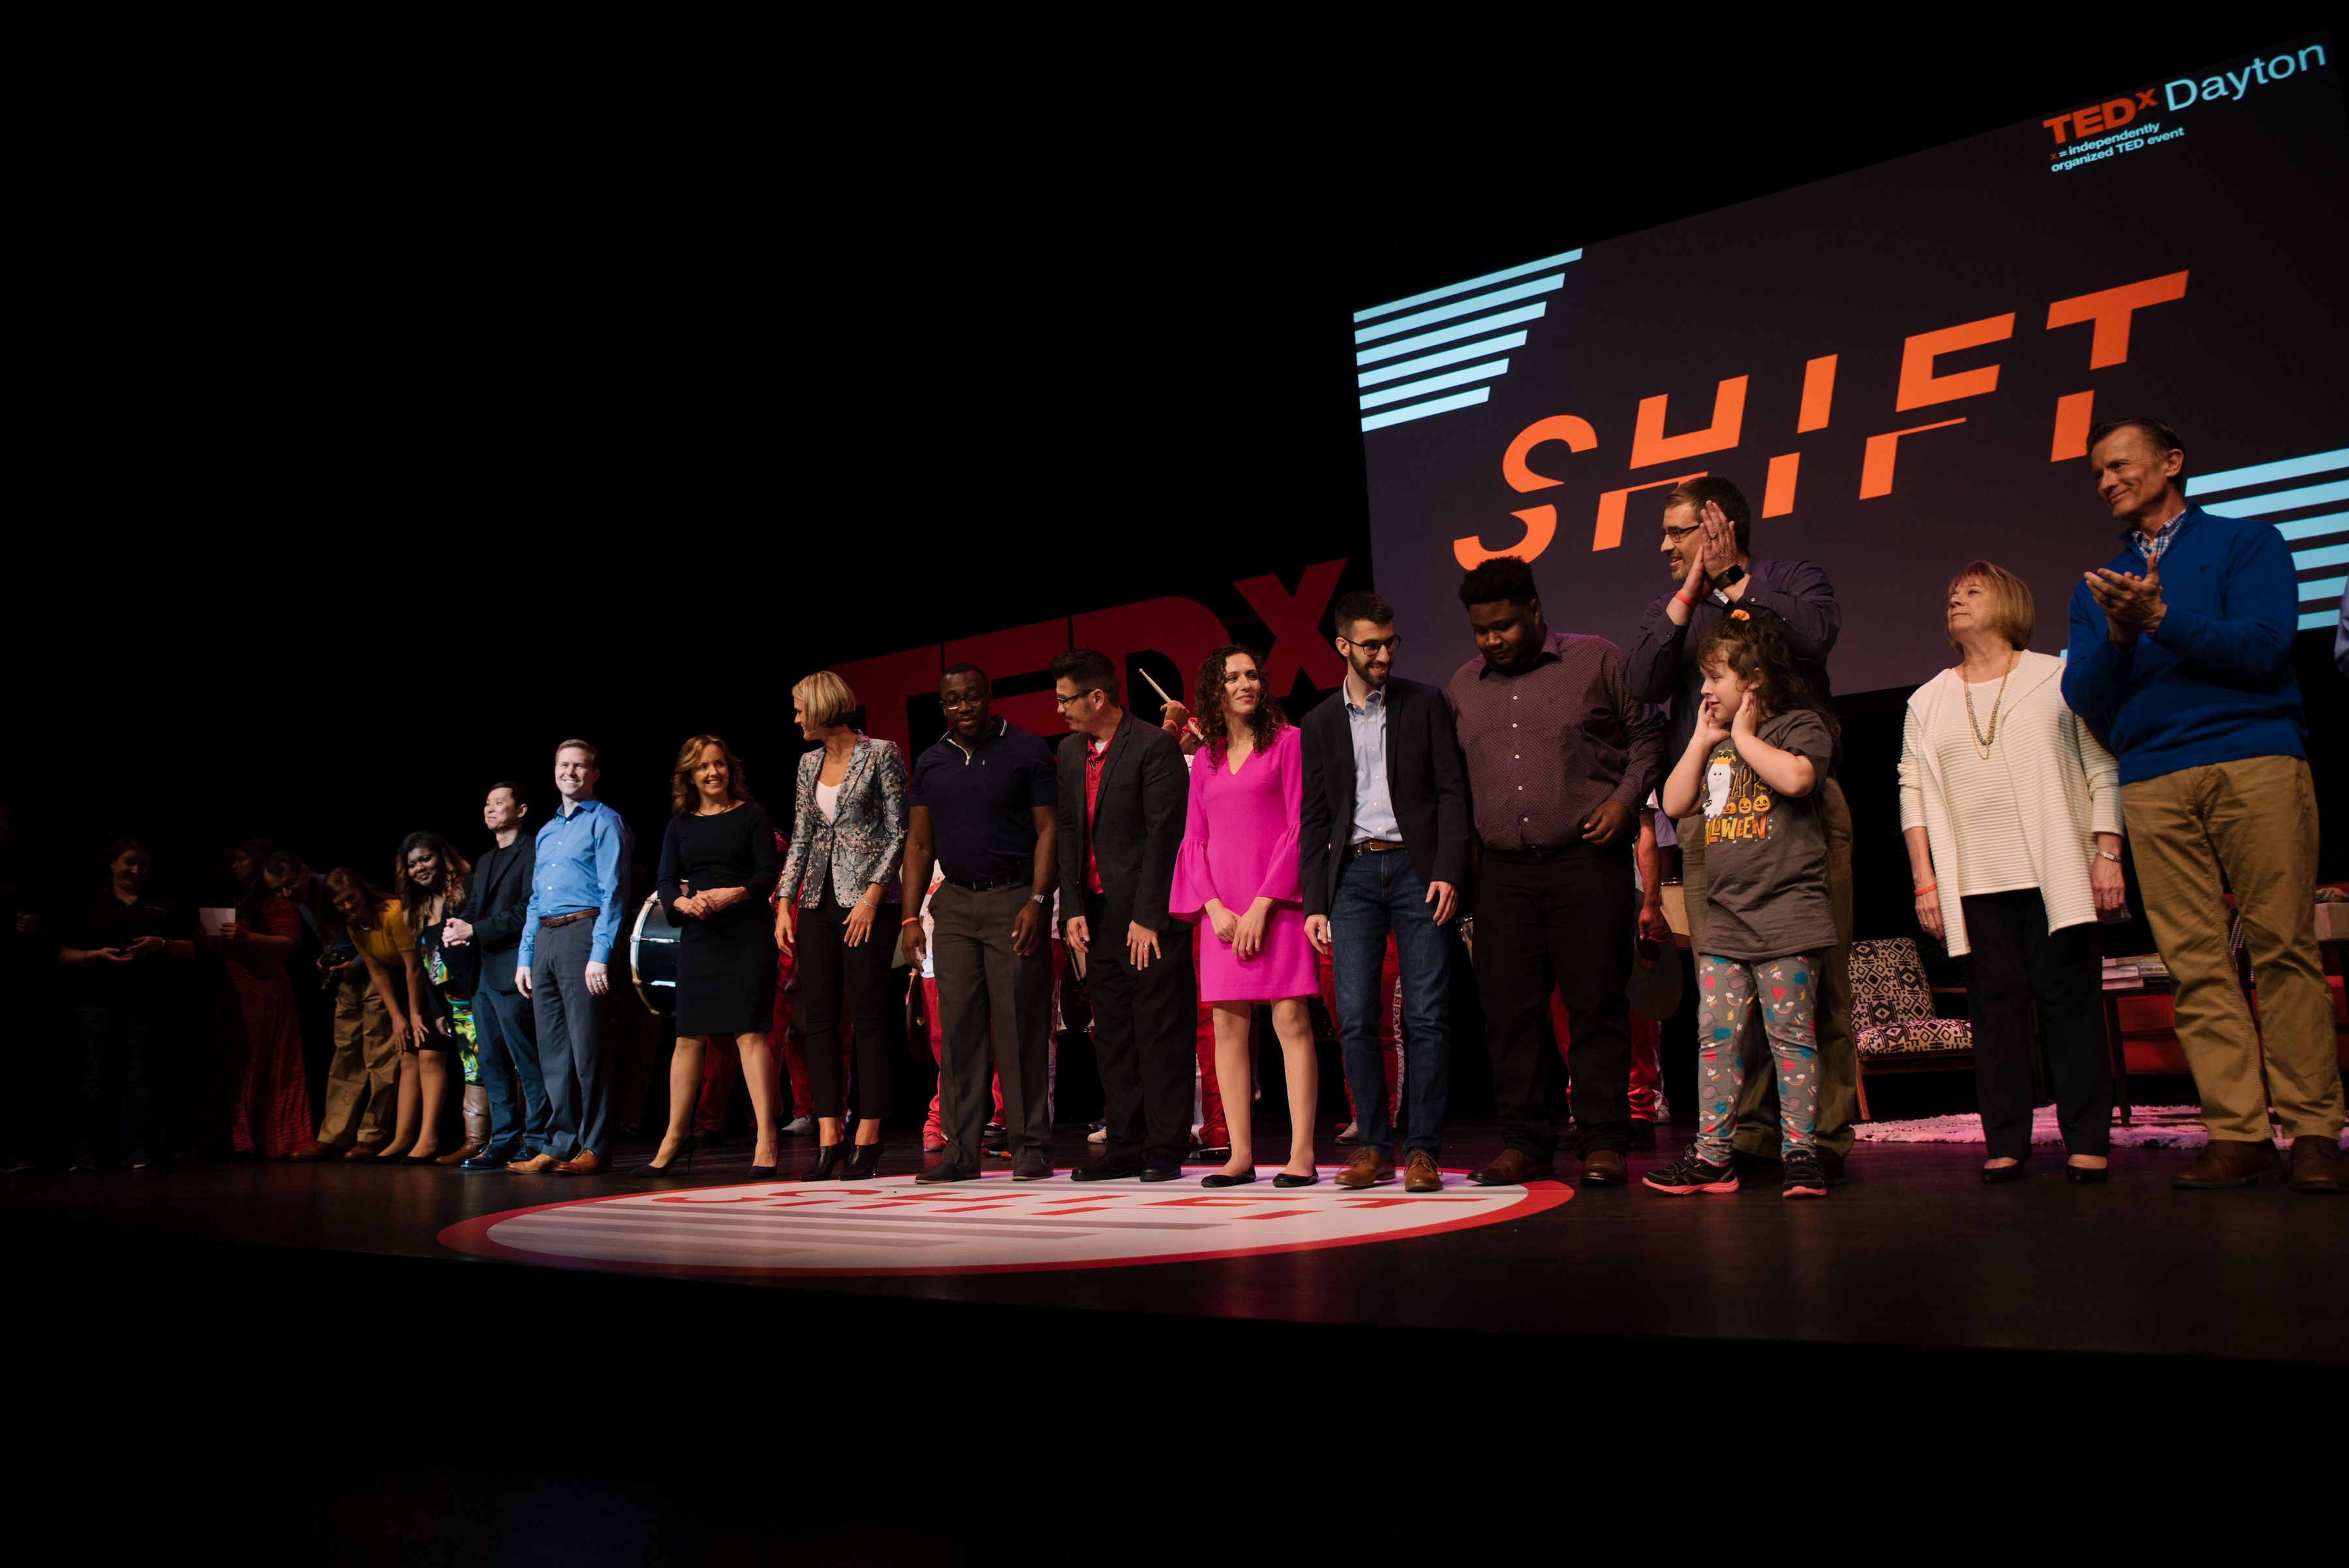 TEDxDayton Seeks Speakers and Announces Date for 2019 Event